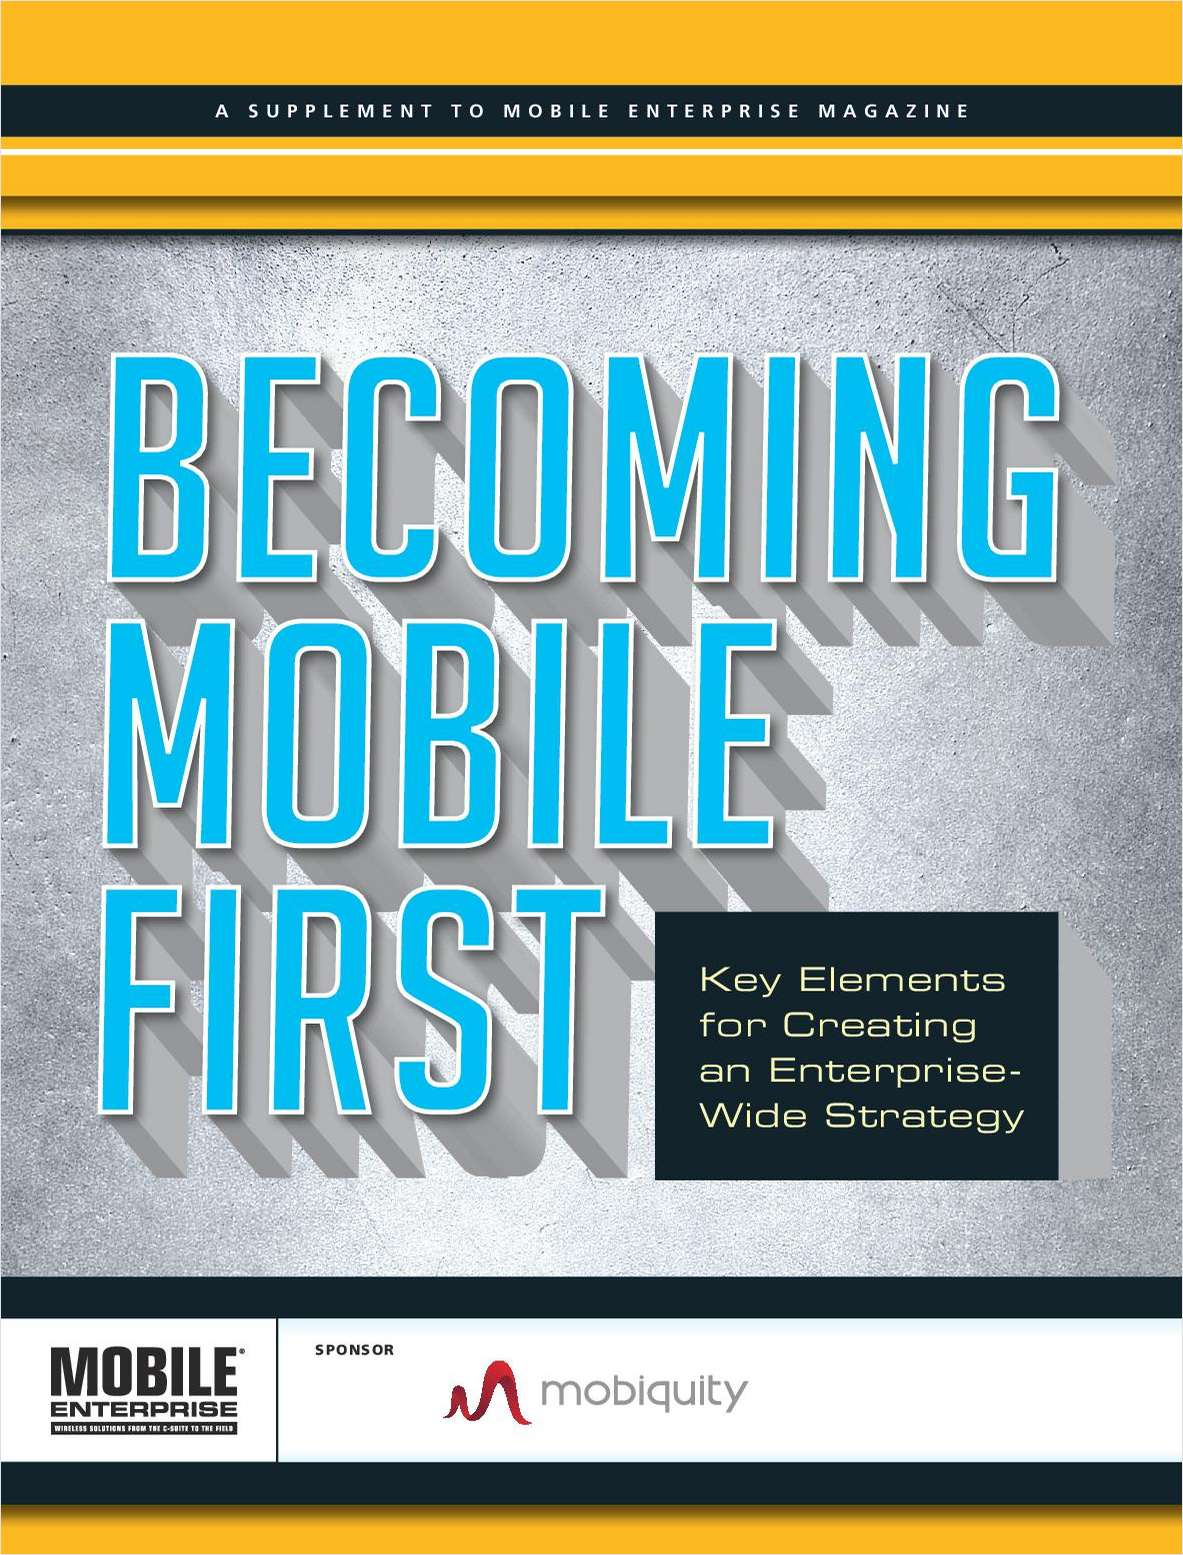 Mobile Enterprise Magazine Report: Becoming Mobile First